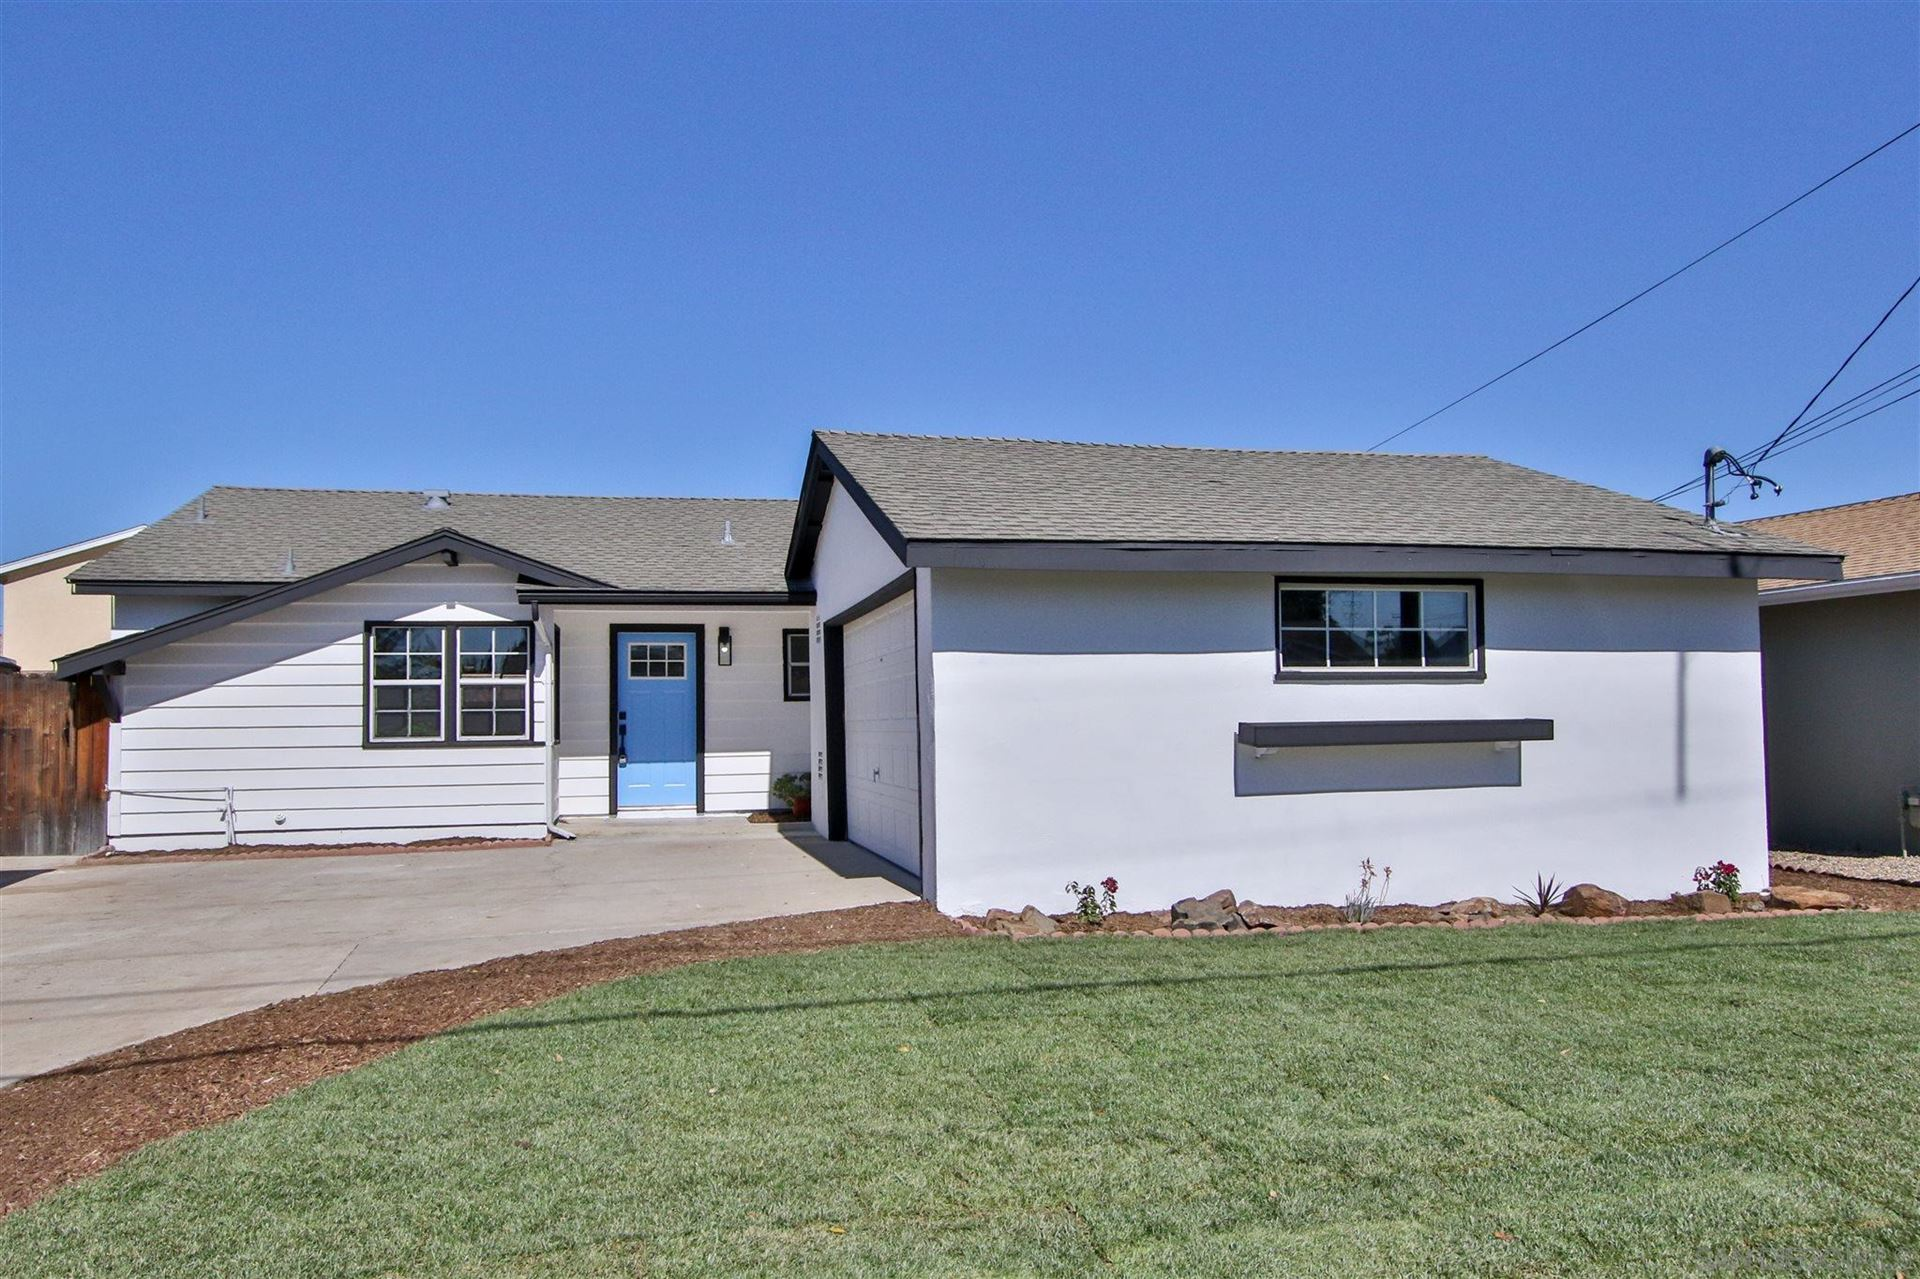 Photo for 4862 Mount Alifan Dr, San Diego, CA 92111 (MLS # 210004688)